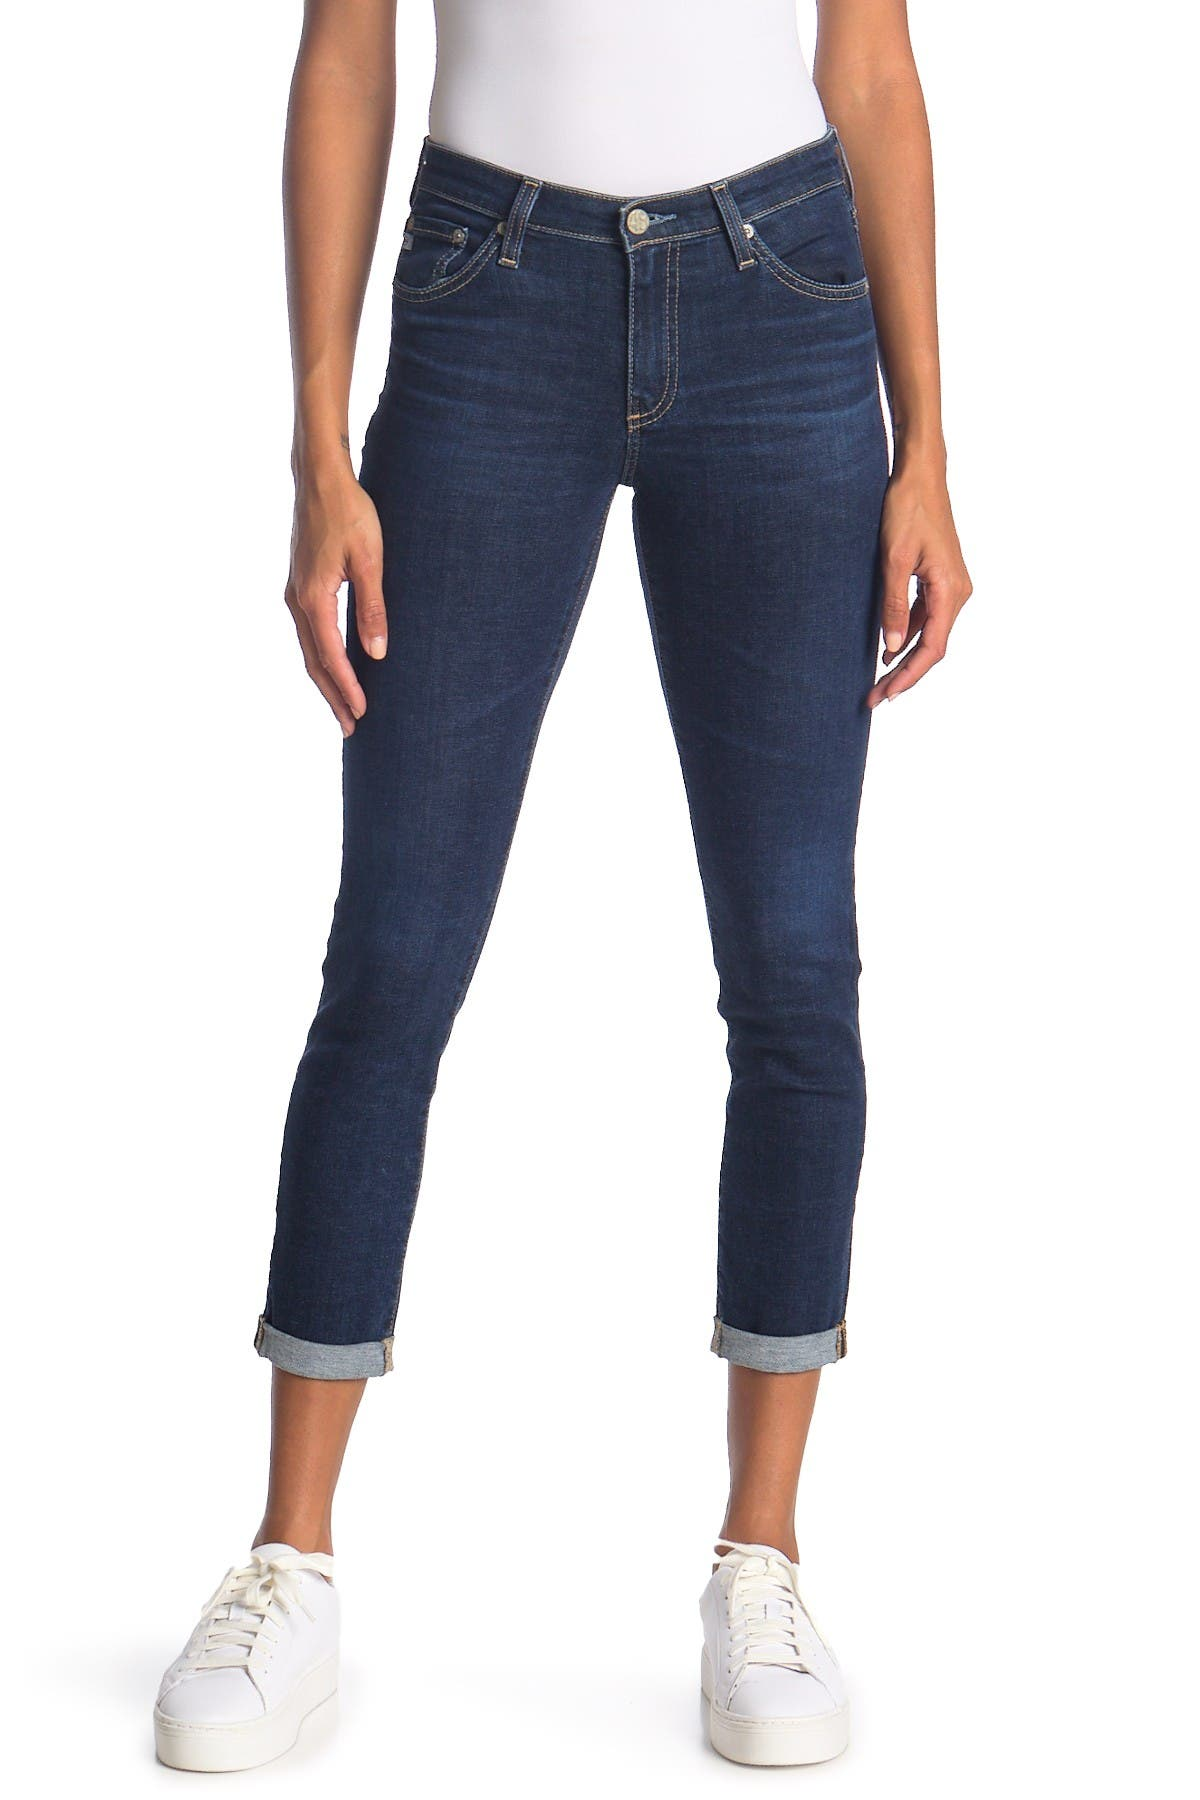 Image of AG Prima Roll Up Skinny Jeans